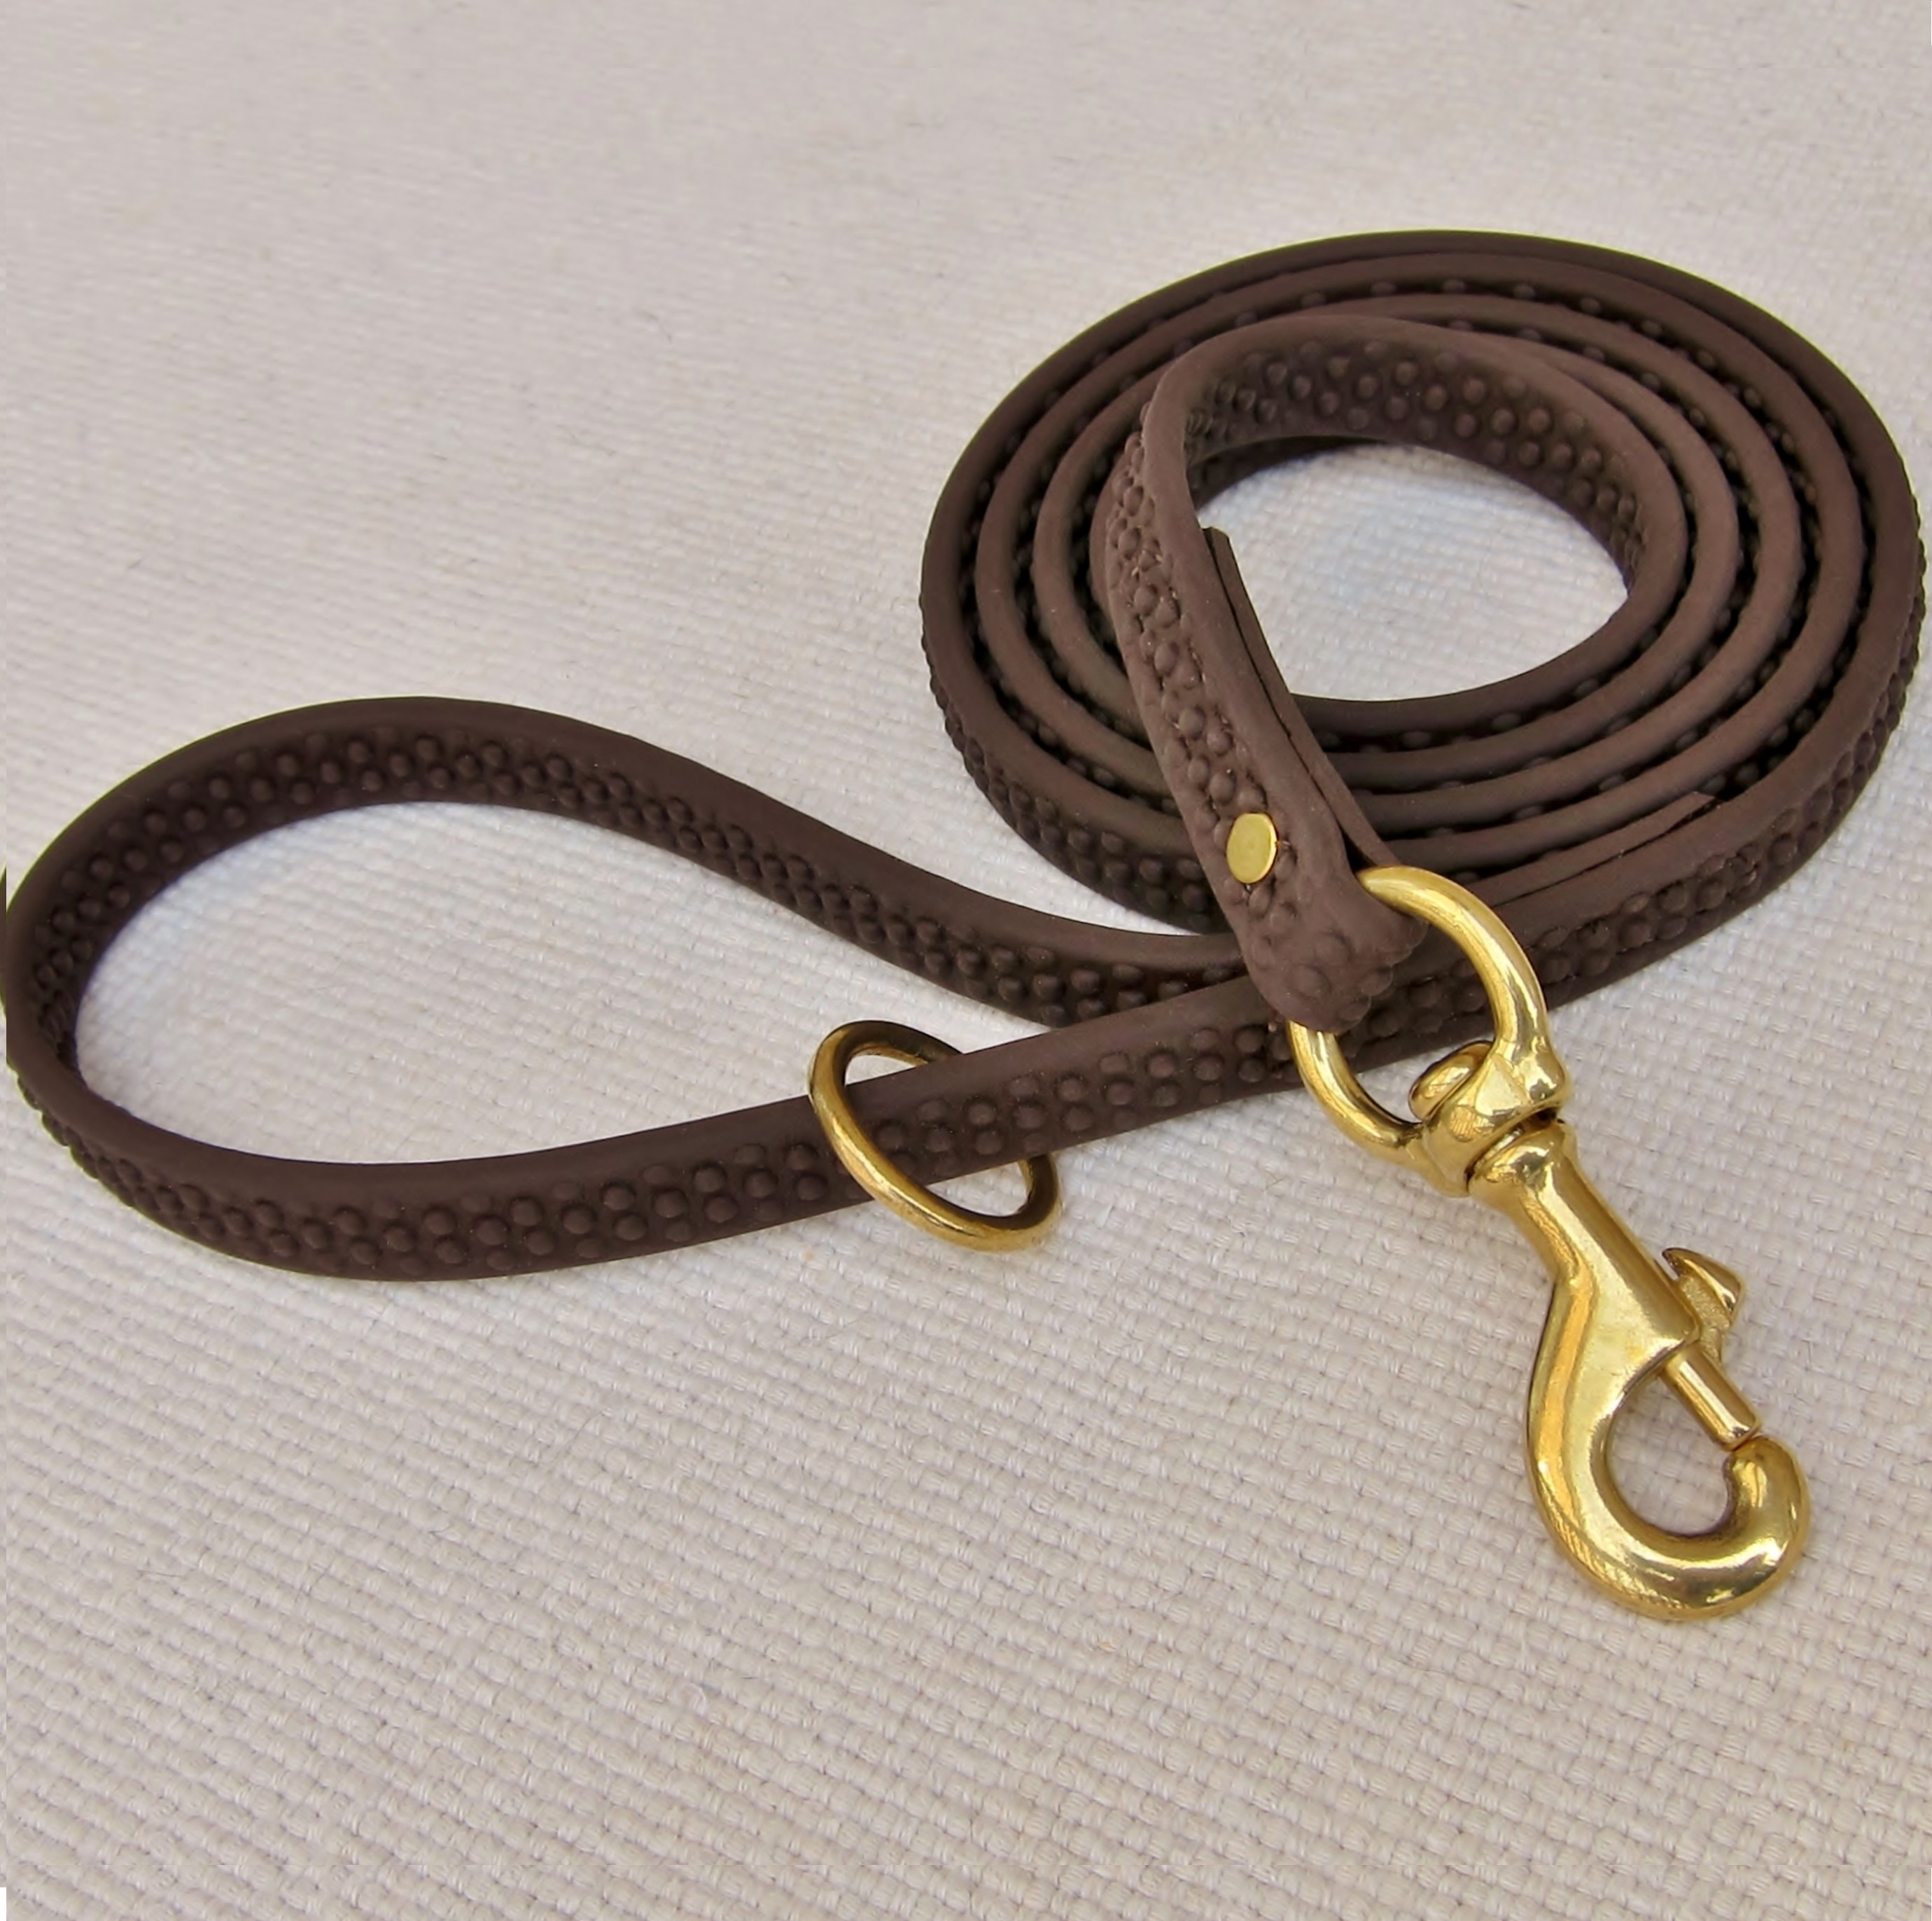 dog leash, durable dog leash, biothane, rein grip